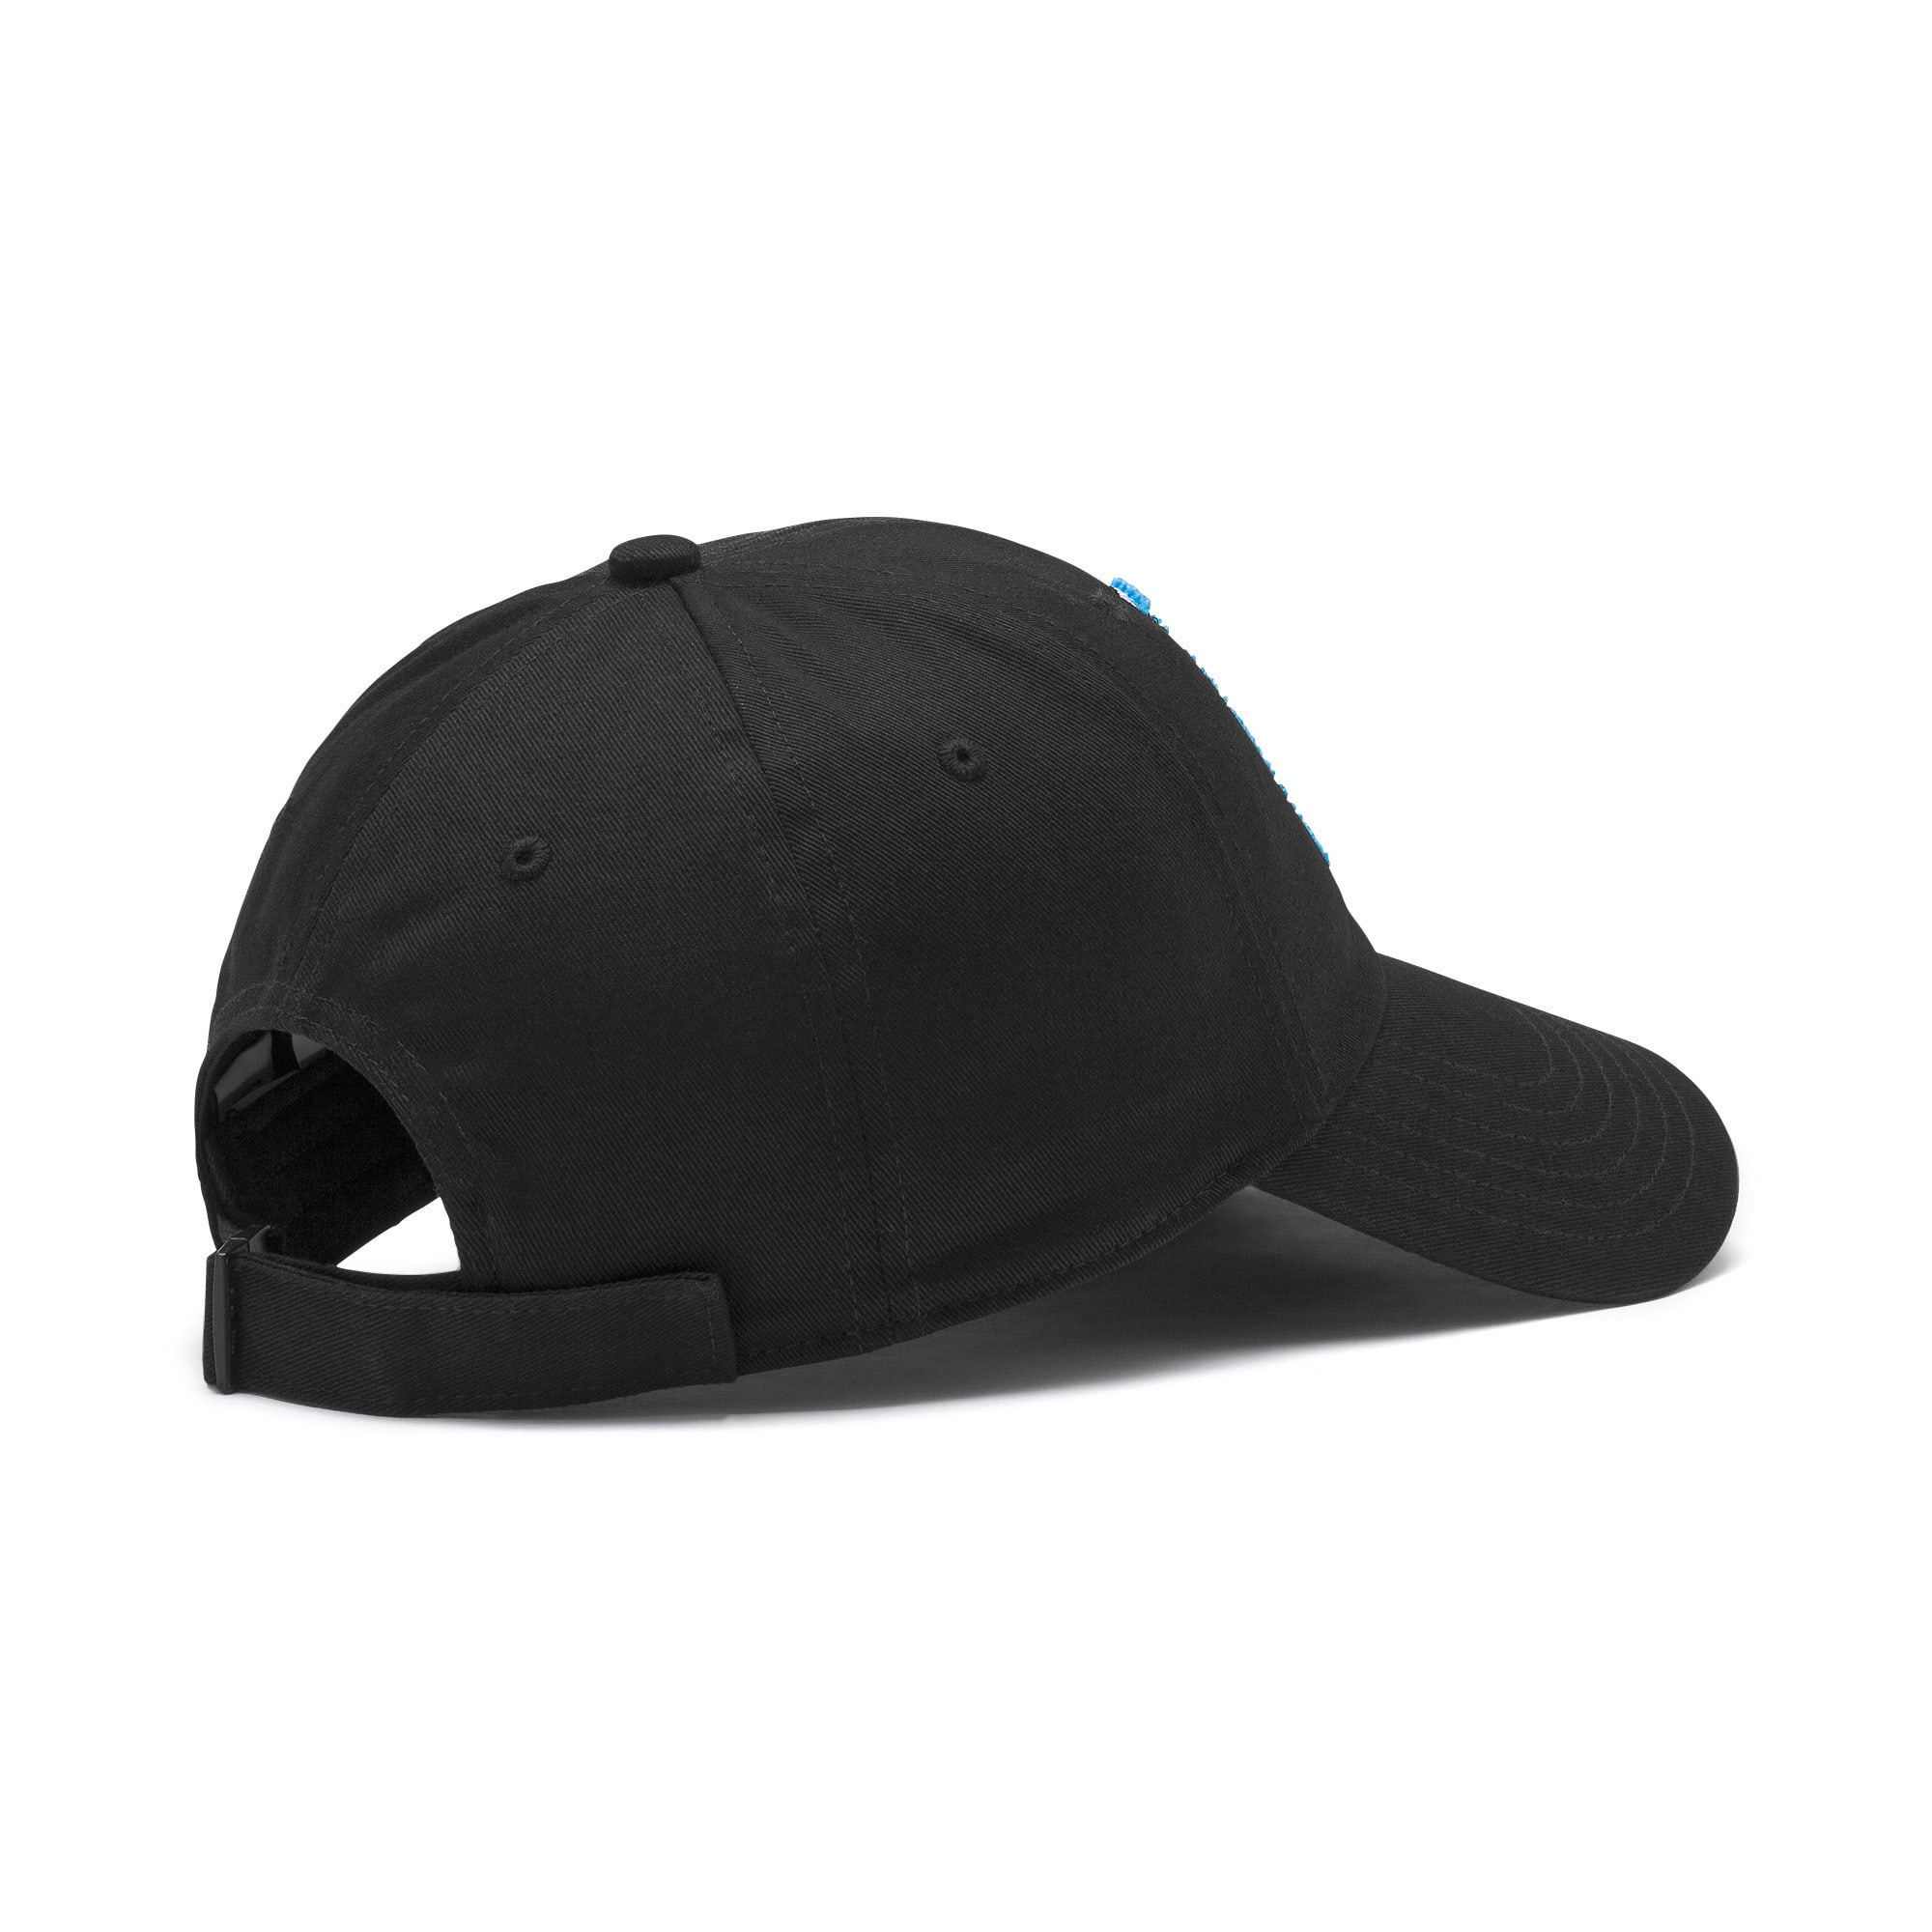 Thumbnail 2 of PUMA x SESAME STREET Kids' Baseball Cap, Puma Black, medium